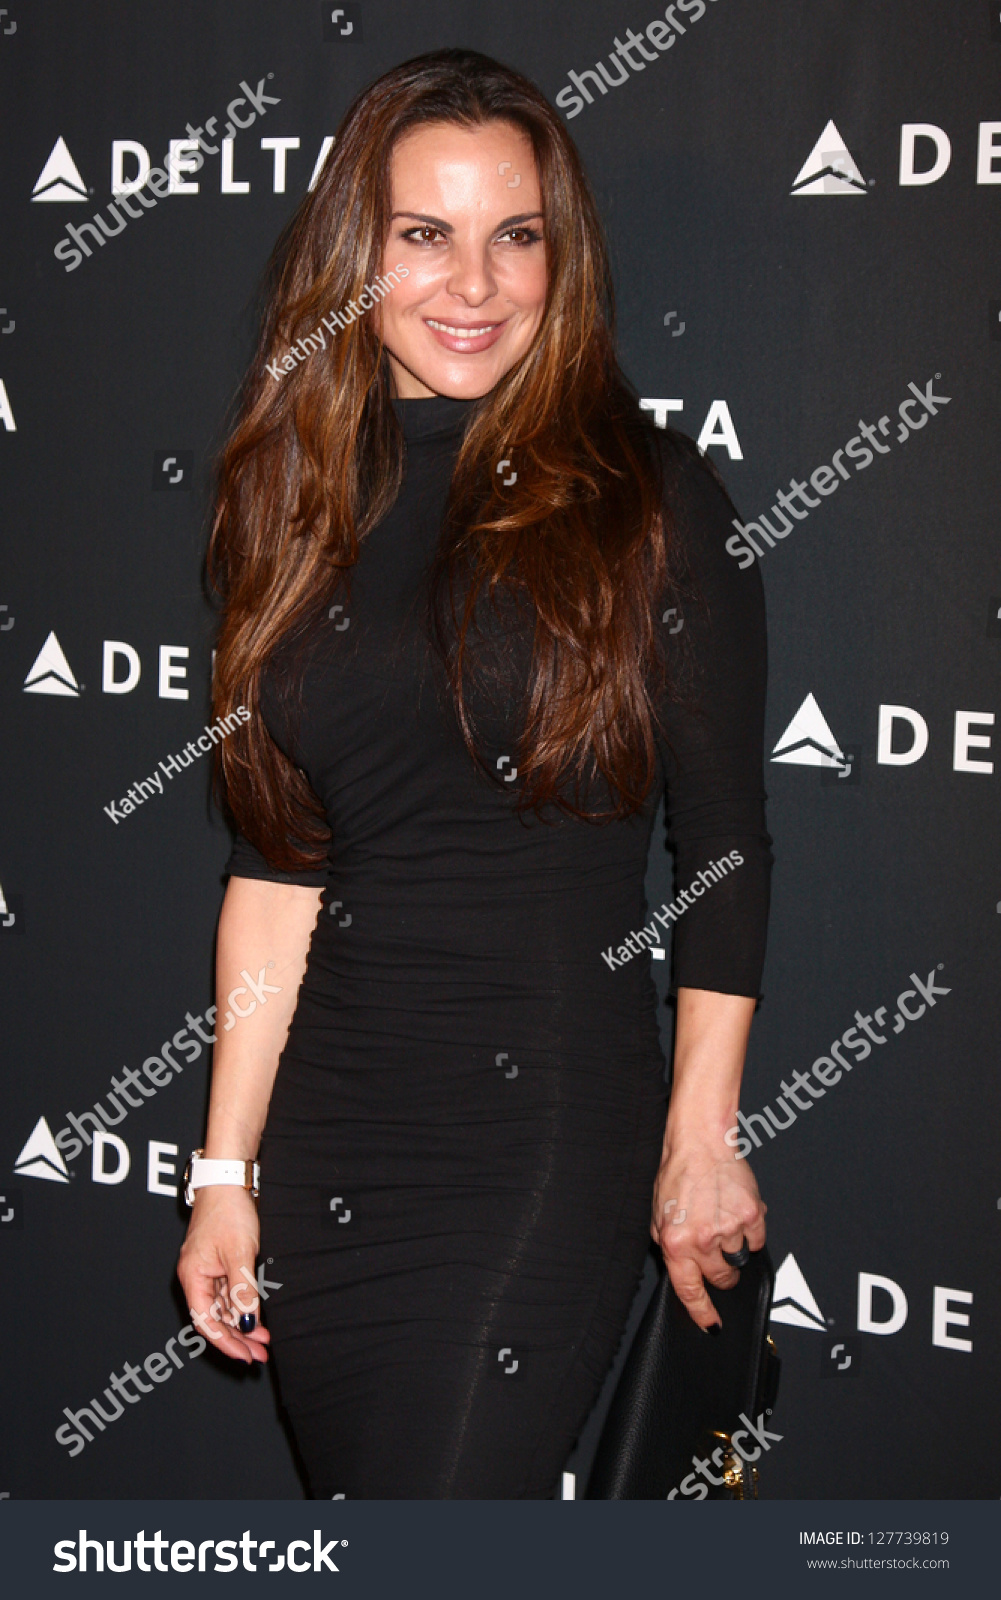 photo Kate del castillo arriving to appear on good morning america in nyc